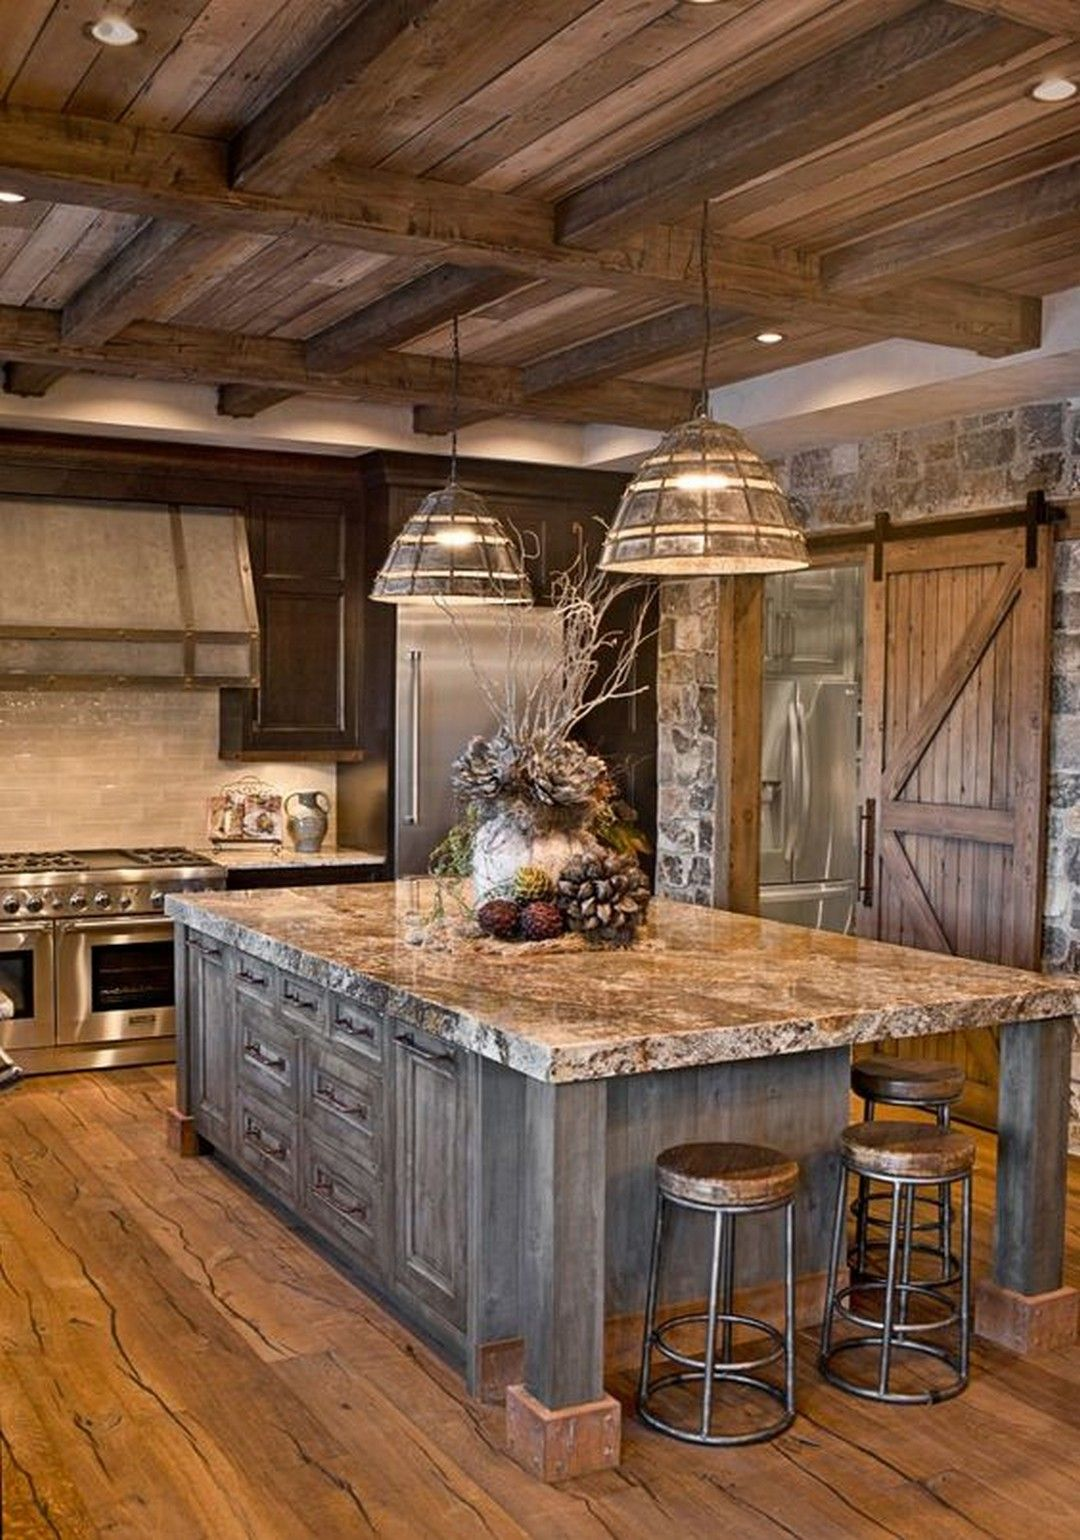 Renew your Ordinary Kitchen with These Inspiring Rustic Country Kitchen Ideas #rustichomedecor